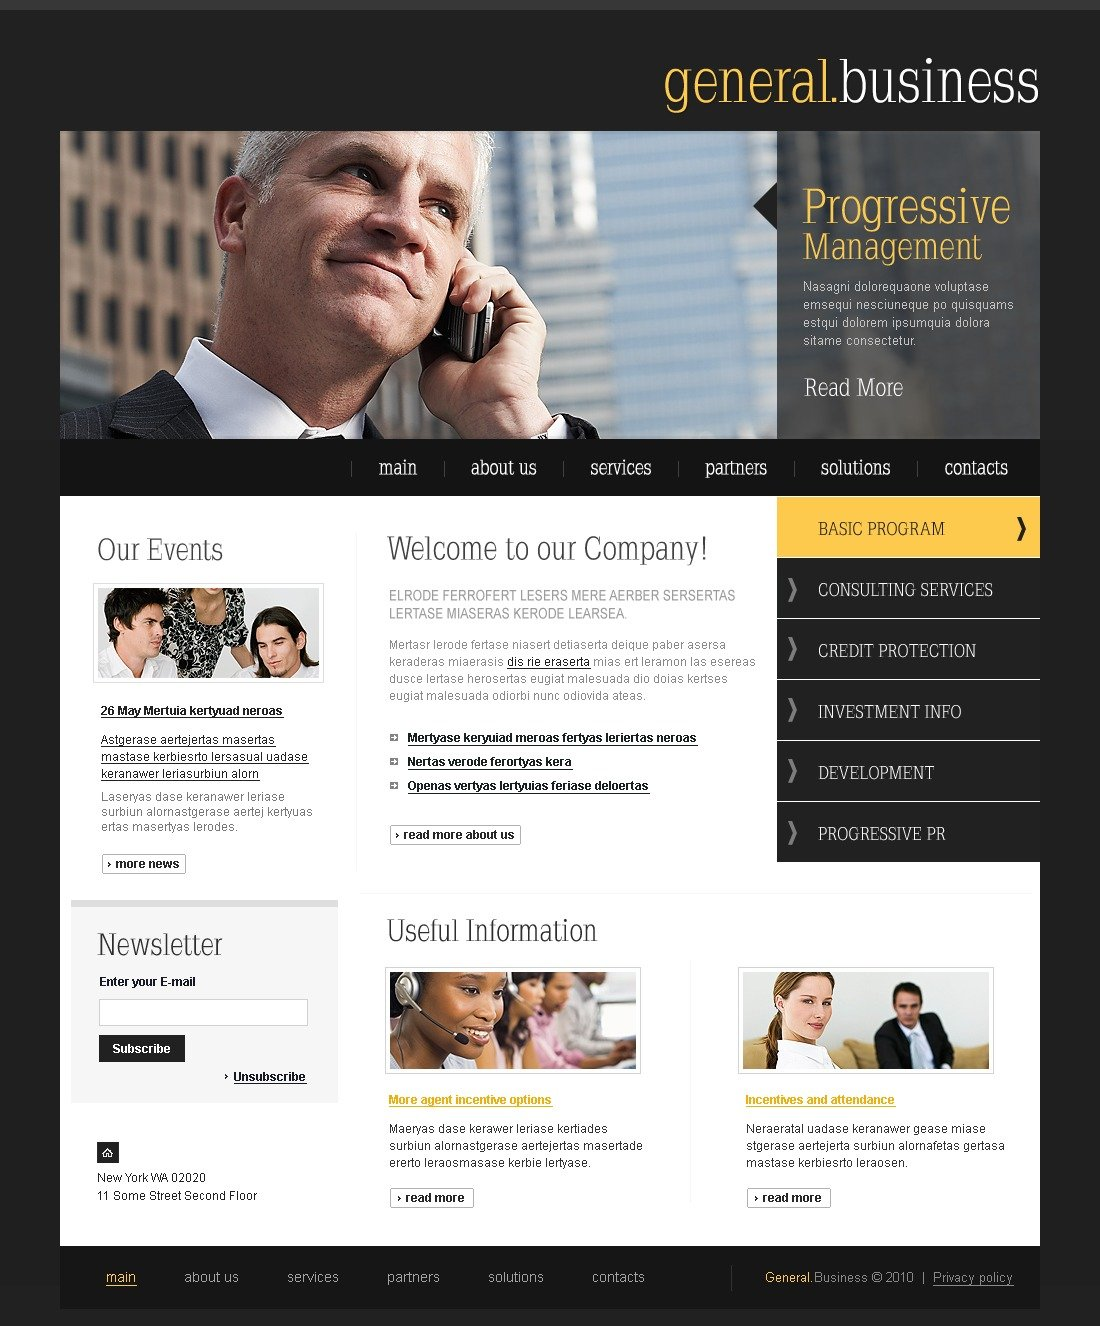 The General Business Company PSD Design 54354, one of the best PSD templates of its kind (business, flash 8, wide), also known as general business company PSD template, corporate solutions PSD template, innovations PSD template, contacts PSD template, service PSD template, support PSD template, information dealer PSD template, stocks PSD template, team PSD template, success PSD template, money PSD template, marketing PSD template, director PSD template, manager PSD template, analytics PSD template, planning PSD template, limited PSD template, office PSD template, sales and related with general business company, corporate solutions, innovations, contacts, service, support, information dealer, stocks, team, success, money, marketing, director, manager, analytics, planning, limited, office, sales, etc.